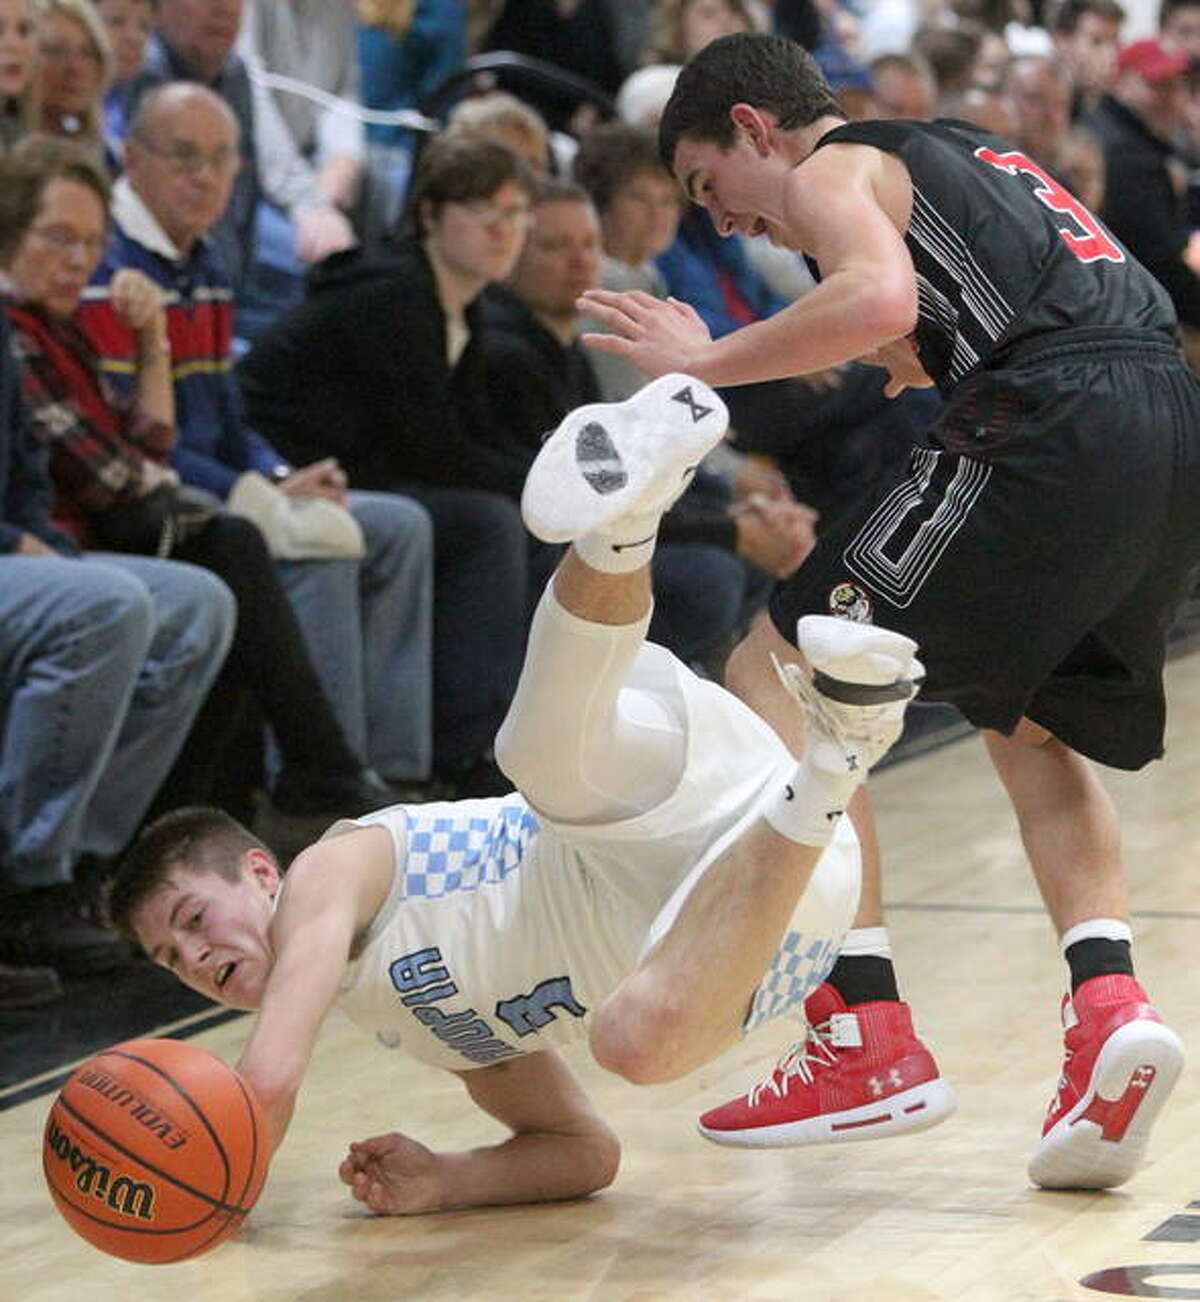 Triopia's Zach Thompson dives after a loose ball during a boys' basketball game against Calhoun at the Winchester Invitational Tournament Monday night. Triopia's Garrett Snow heads for the basket Monday night at Winchester.